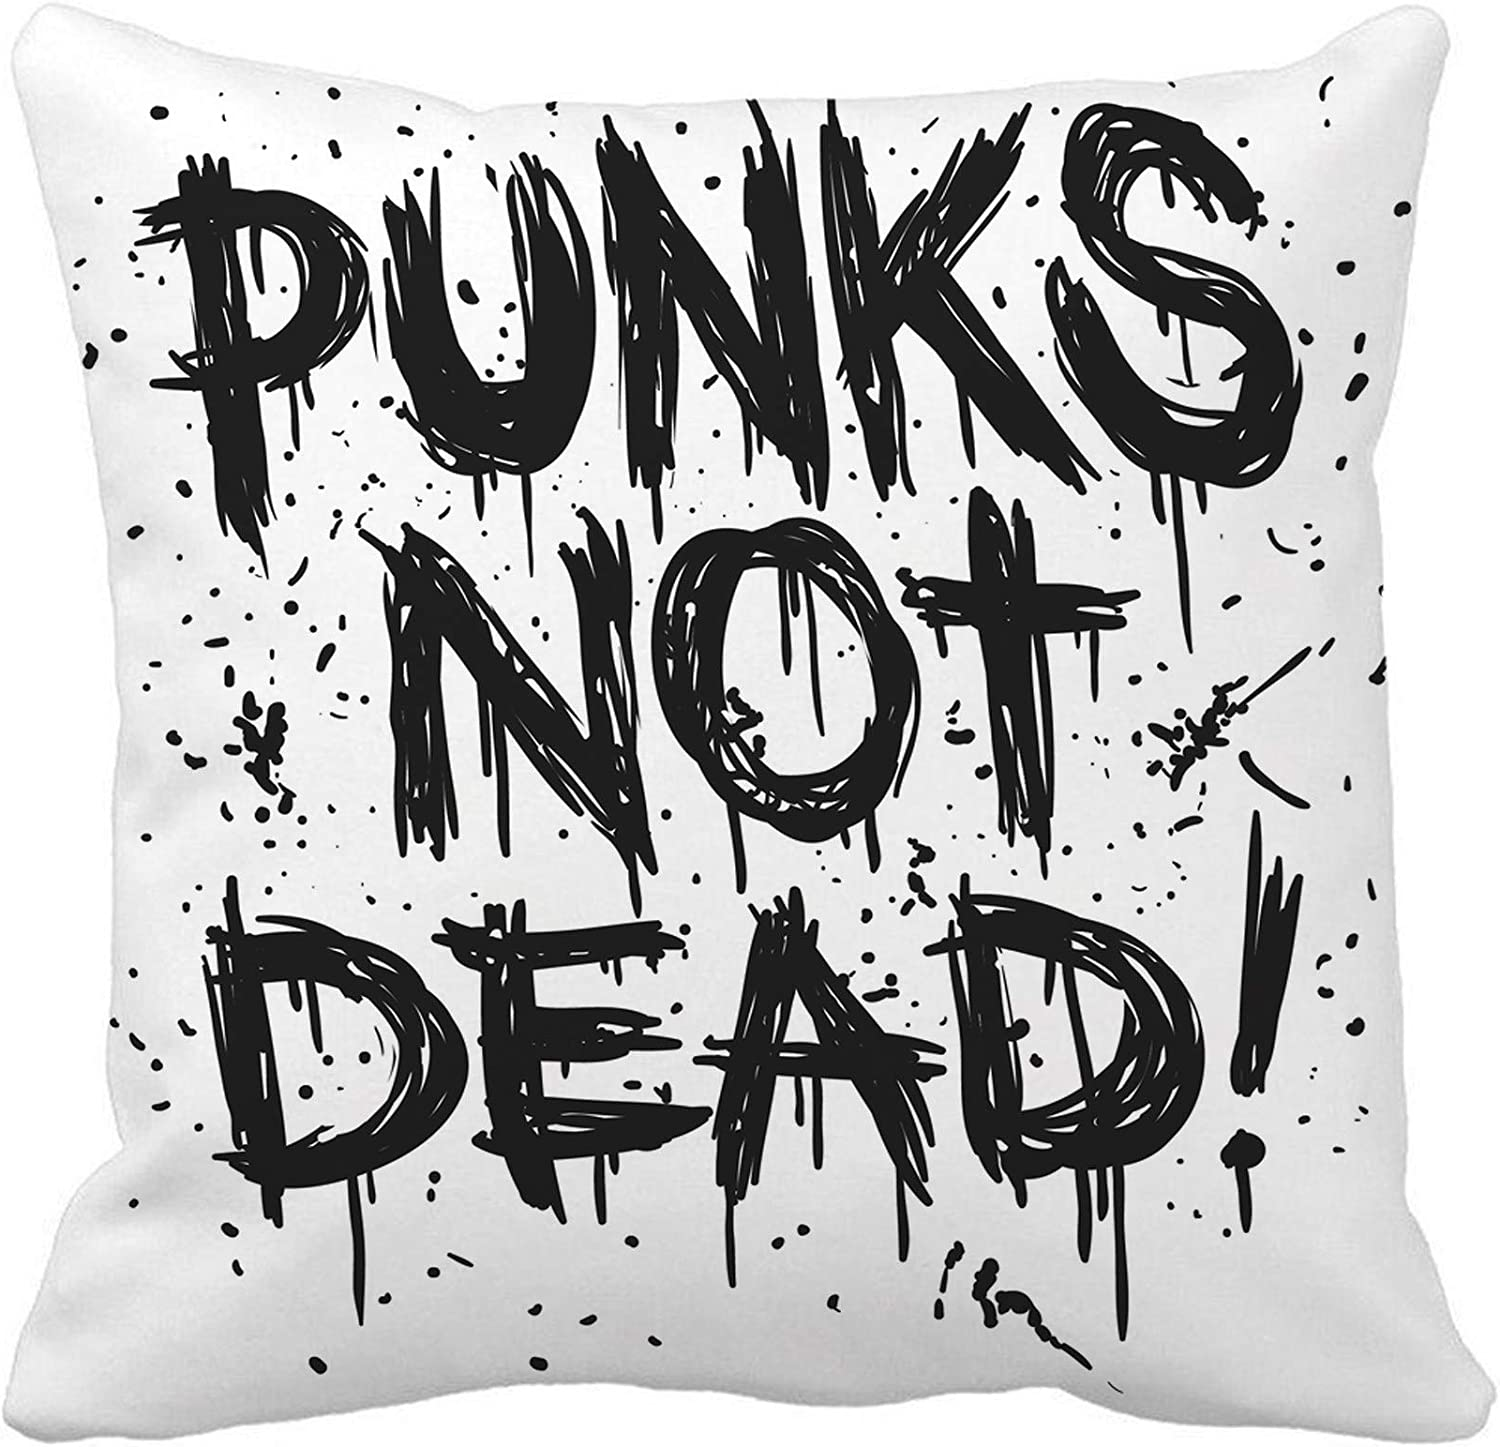 Awowee Throw Pillow Cover Tattoo Sketch Punks Not Dead Label for Anarchy Mohawk 16x16 Inches Pillowcase Home Decorative Square Pillow Case Cushion Cover